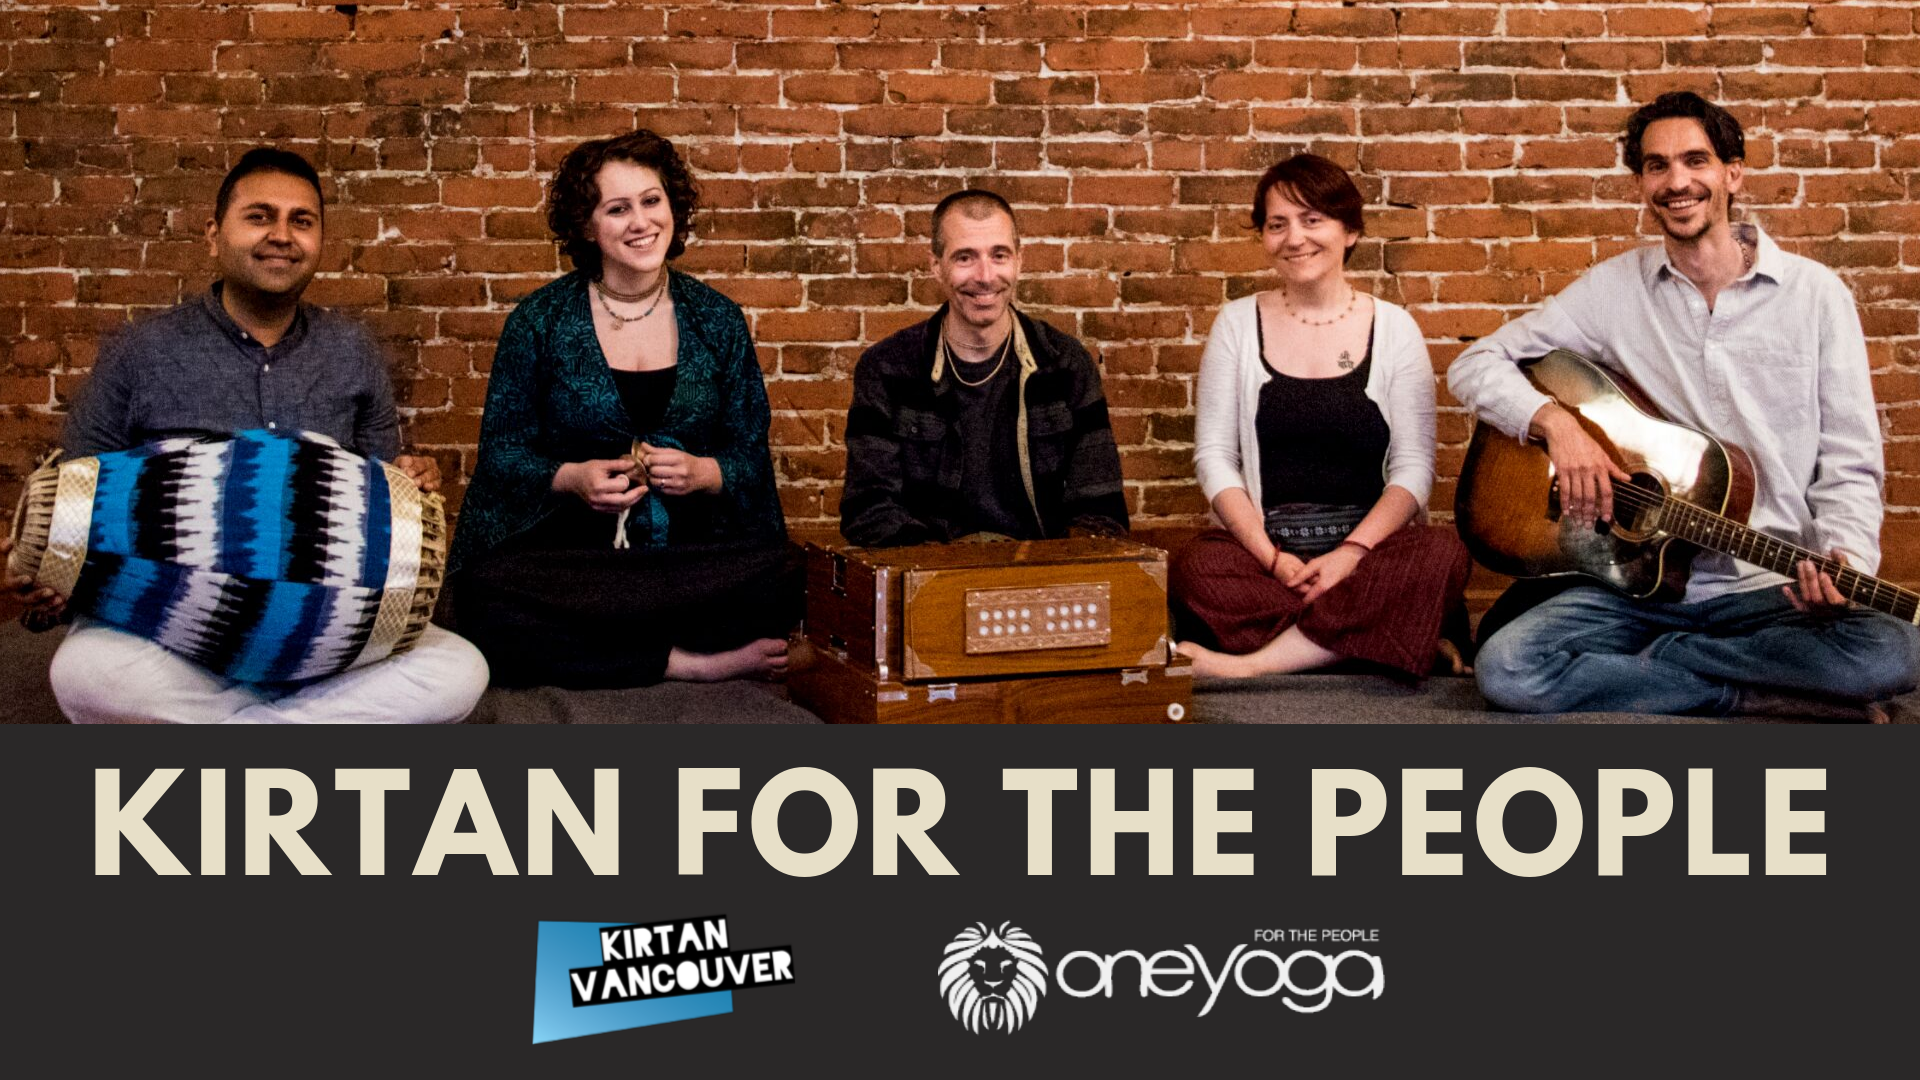 KIRTAN FOR THE PEOPLE   Kirtan Vancouver and One Yoga For the People would like to present to you an evening of sacred chants and mantra meditation. Please come join us with your hearts and voices so that we may create an uplifting energy of love and grace through Kirtan!  Cushions will be provided and you can bring a reusable water bottle, otherwise just bring yourself and some friends if you like!  The event is by drop-in donation and no one will be turned away for lack of funds.  Finally, do not worry about preregistration, this event is by drop-in and we have plenty of space!      Upcoming Kirtan Dates:  Nov. 30th      Learn more about Kirtan Vancouver at:  http://www.kirtanvancouver.com/events/2017/11/25/kirtan-for-the-people-58eaz-afl5d